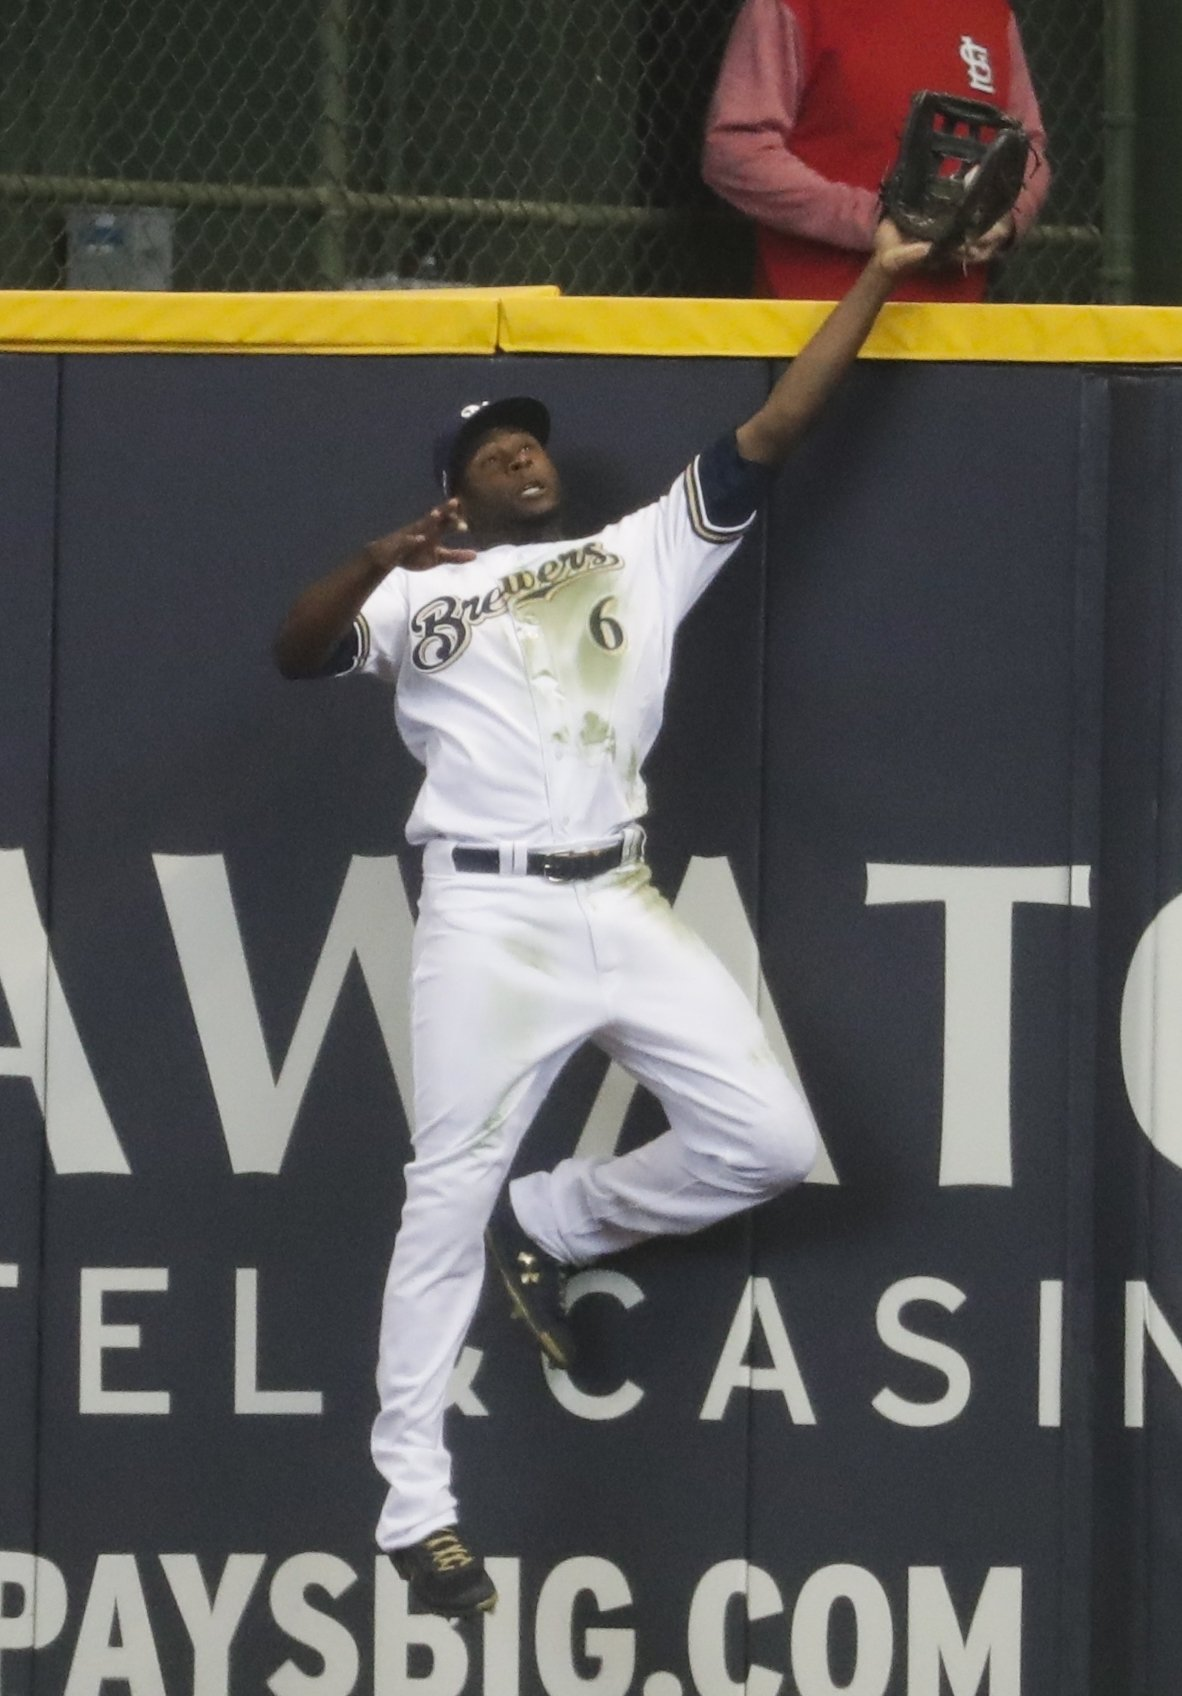 Cain robs tying home run with 2 outs in bottom of 9th, as Brewers win on Opening Day